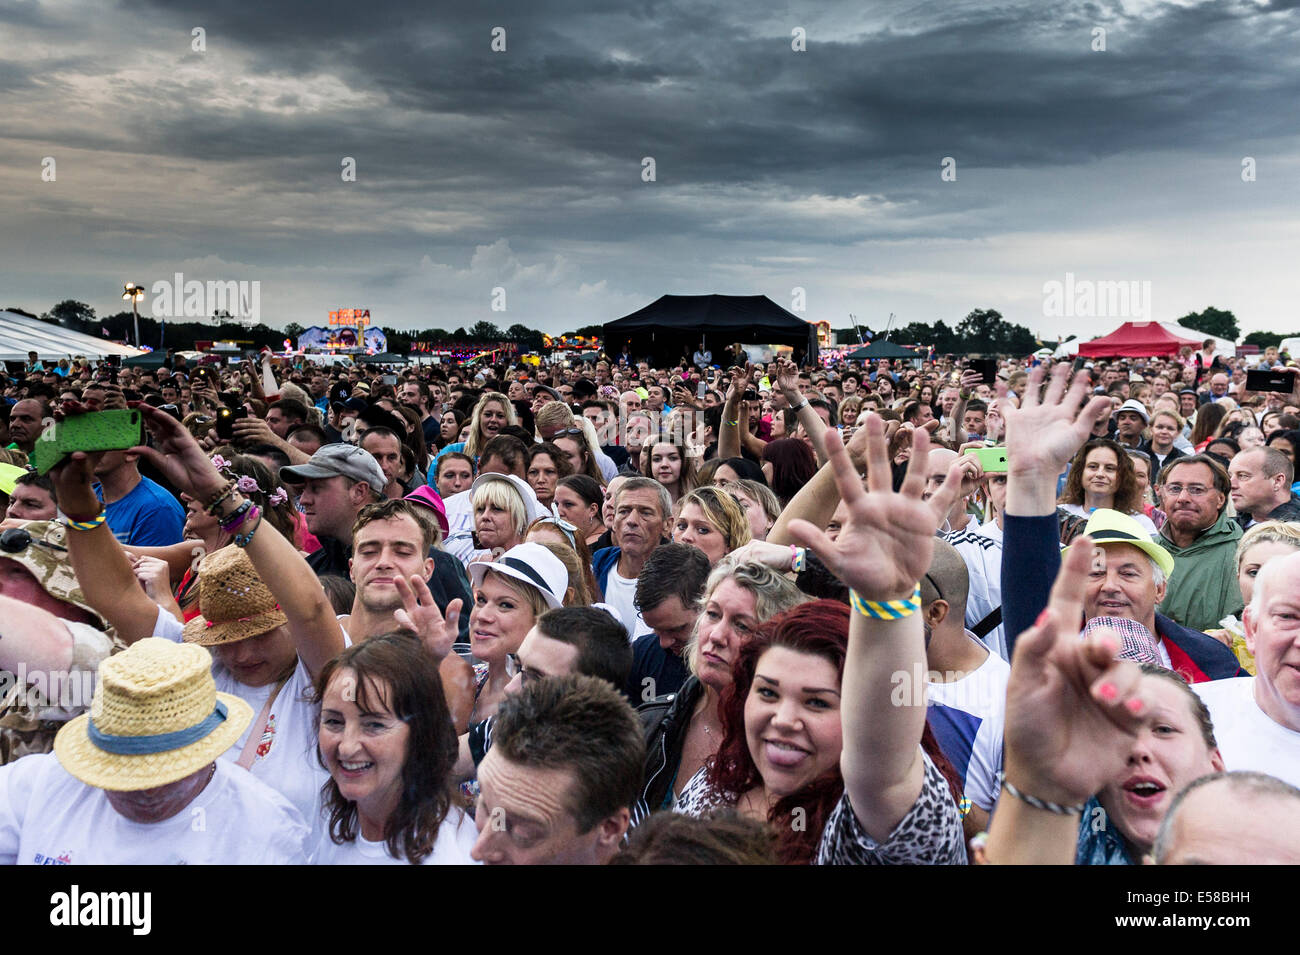 Festivalgoers at the Brentwood Festival enjoying themselves despite the bad weather. - Stock Image